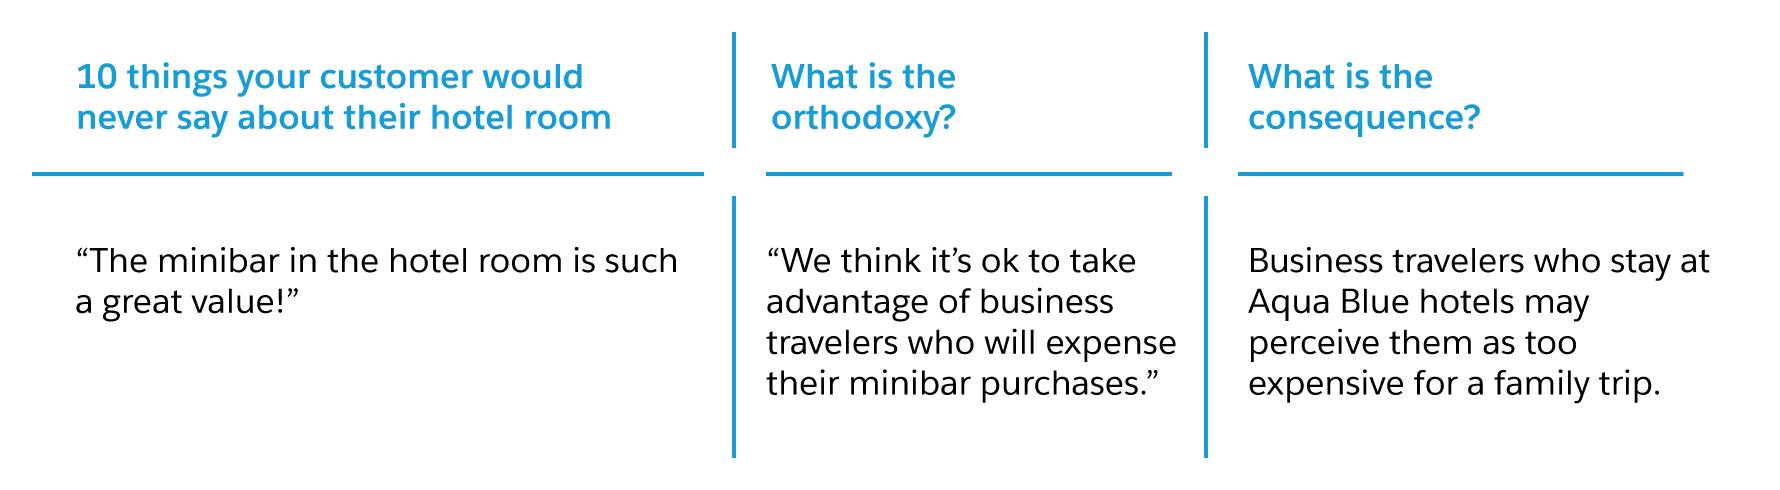 '10 Things Your Customer Would Never Say About...', 'What is the Orthodoxy?', and 'What is the Consequence?'